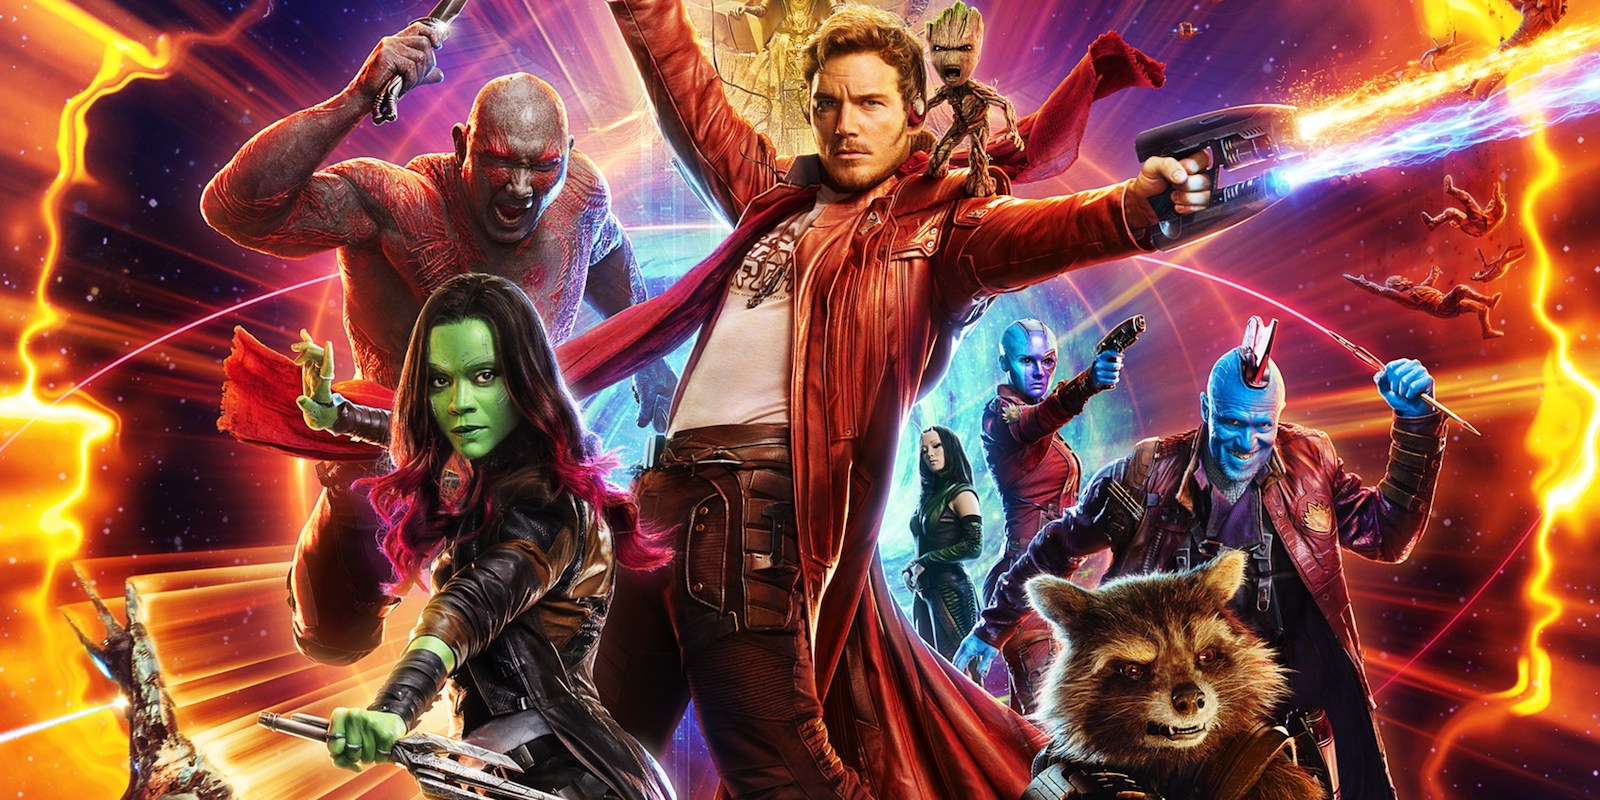 Guardians Of The Galaxy Vol 2 Wallpaper Planet Broadcasting